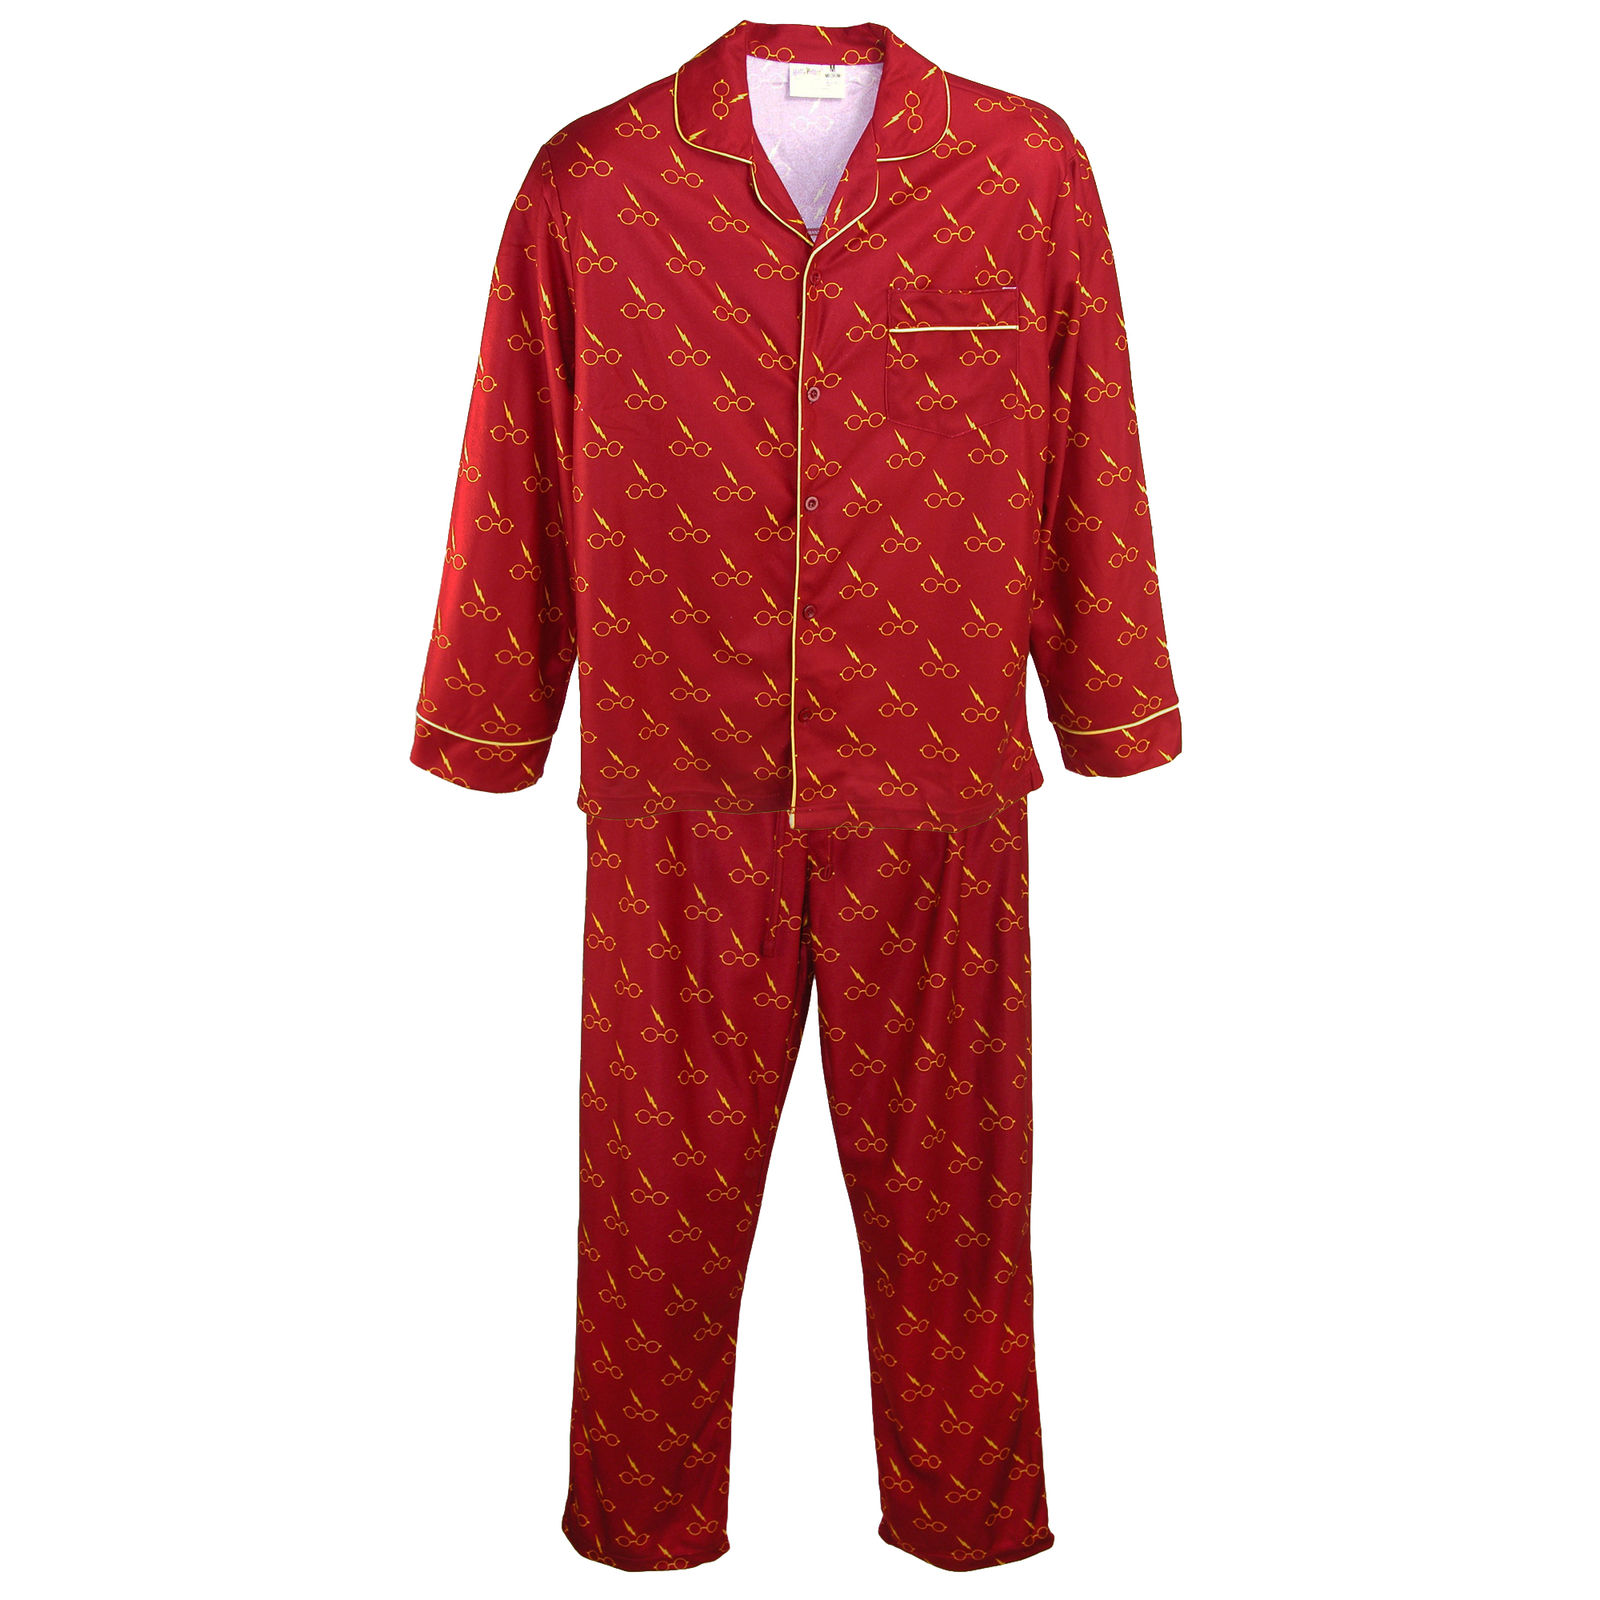 c9e0e3d6e922b Details about Harry Potter Pajama Set Men Long Sleeve Adult Flannel PJ  Sleepwear Glasses SM-XL